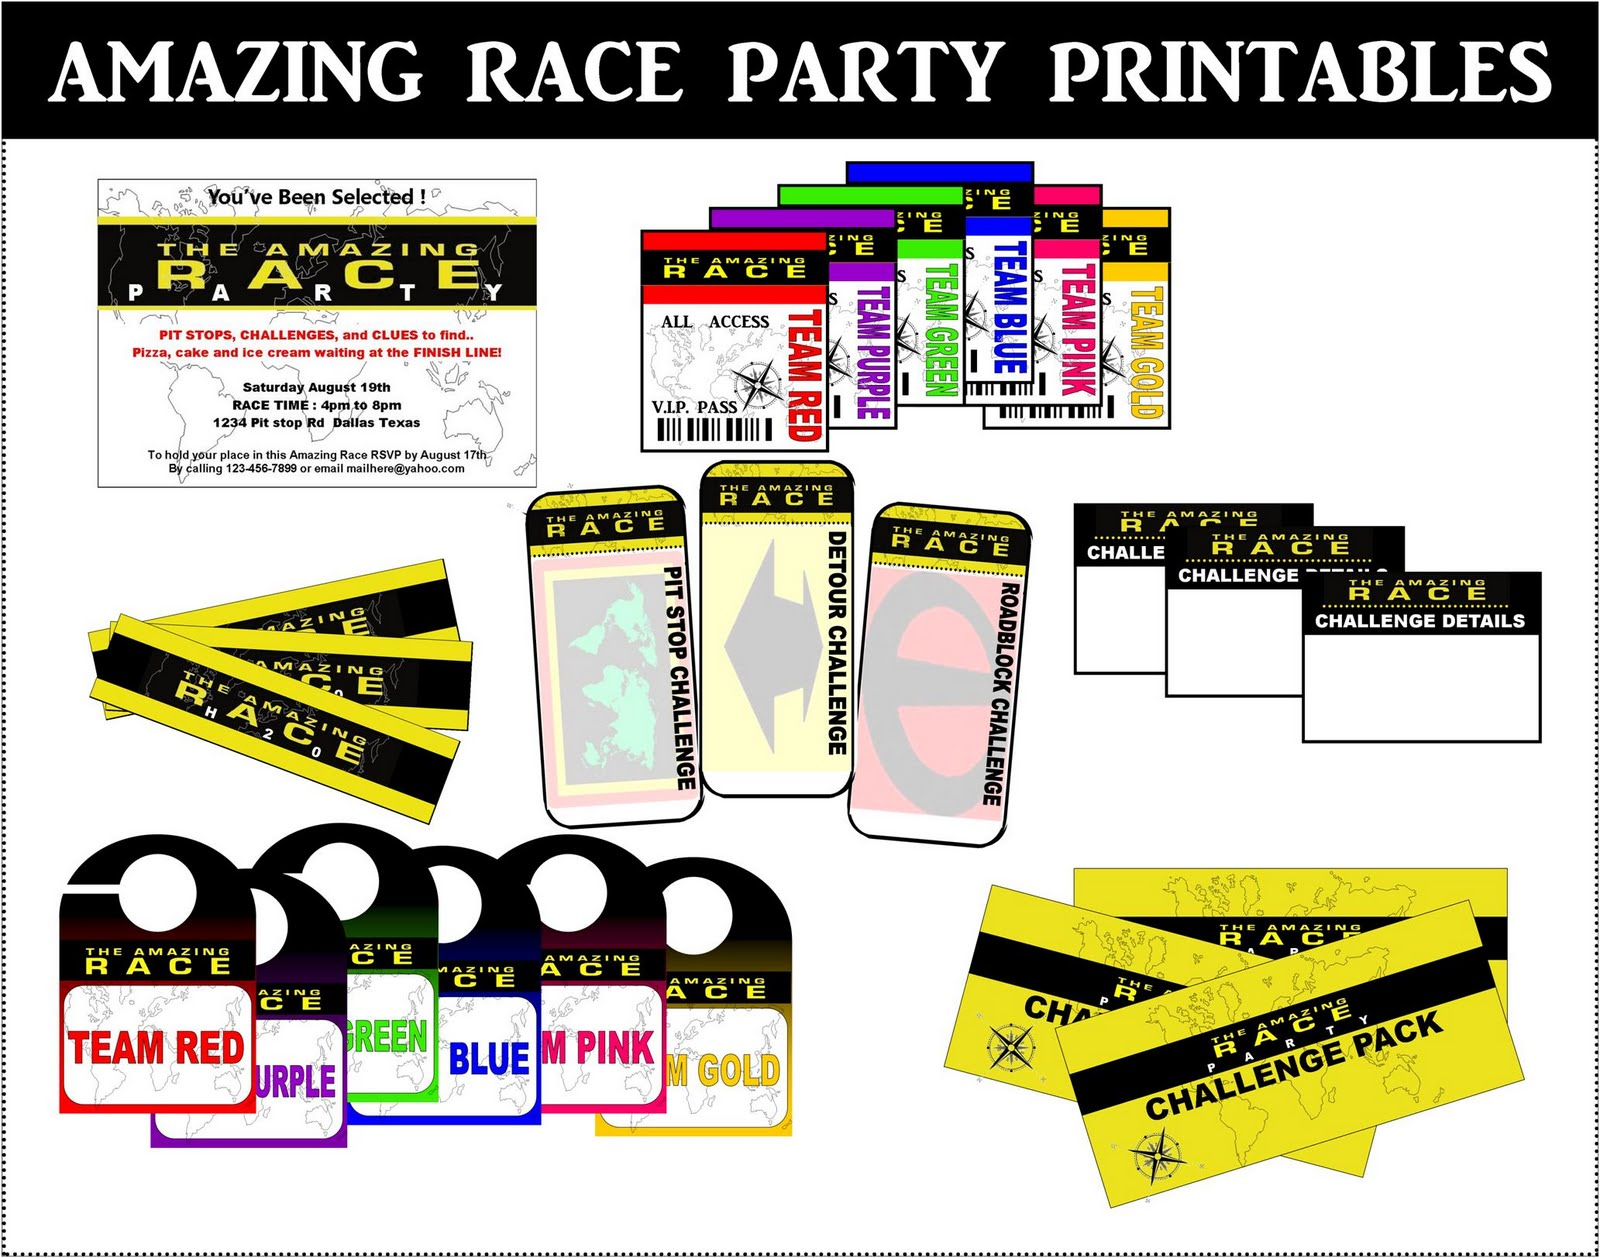 Amazing race logo printable bing images for Amazing race birthday party templates